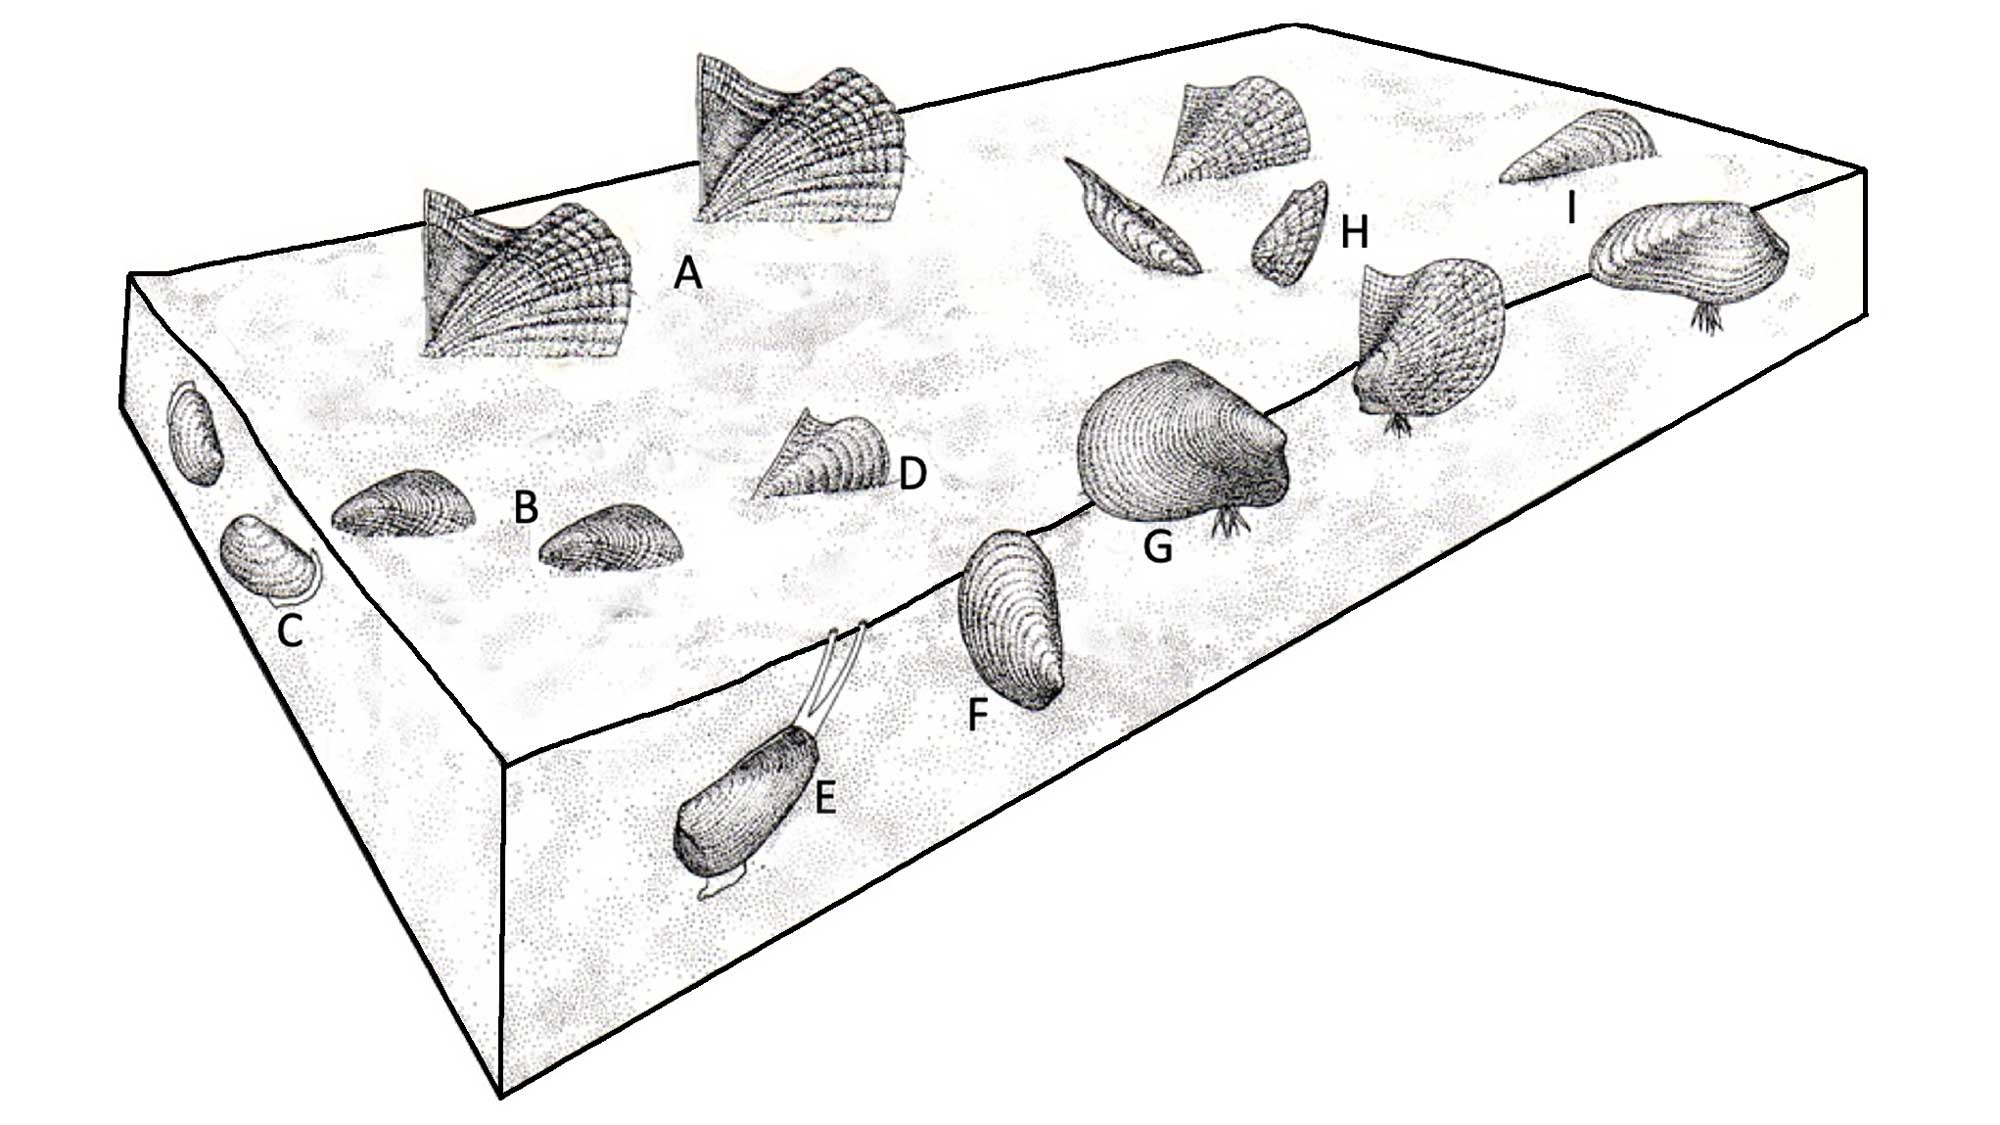 Illustration of the life habits of Devonian bivalves.